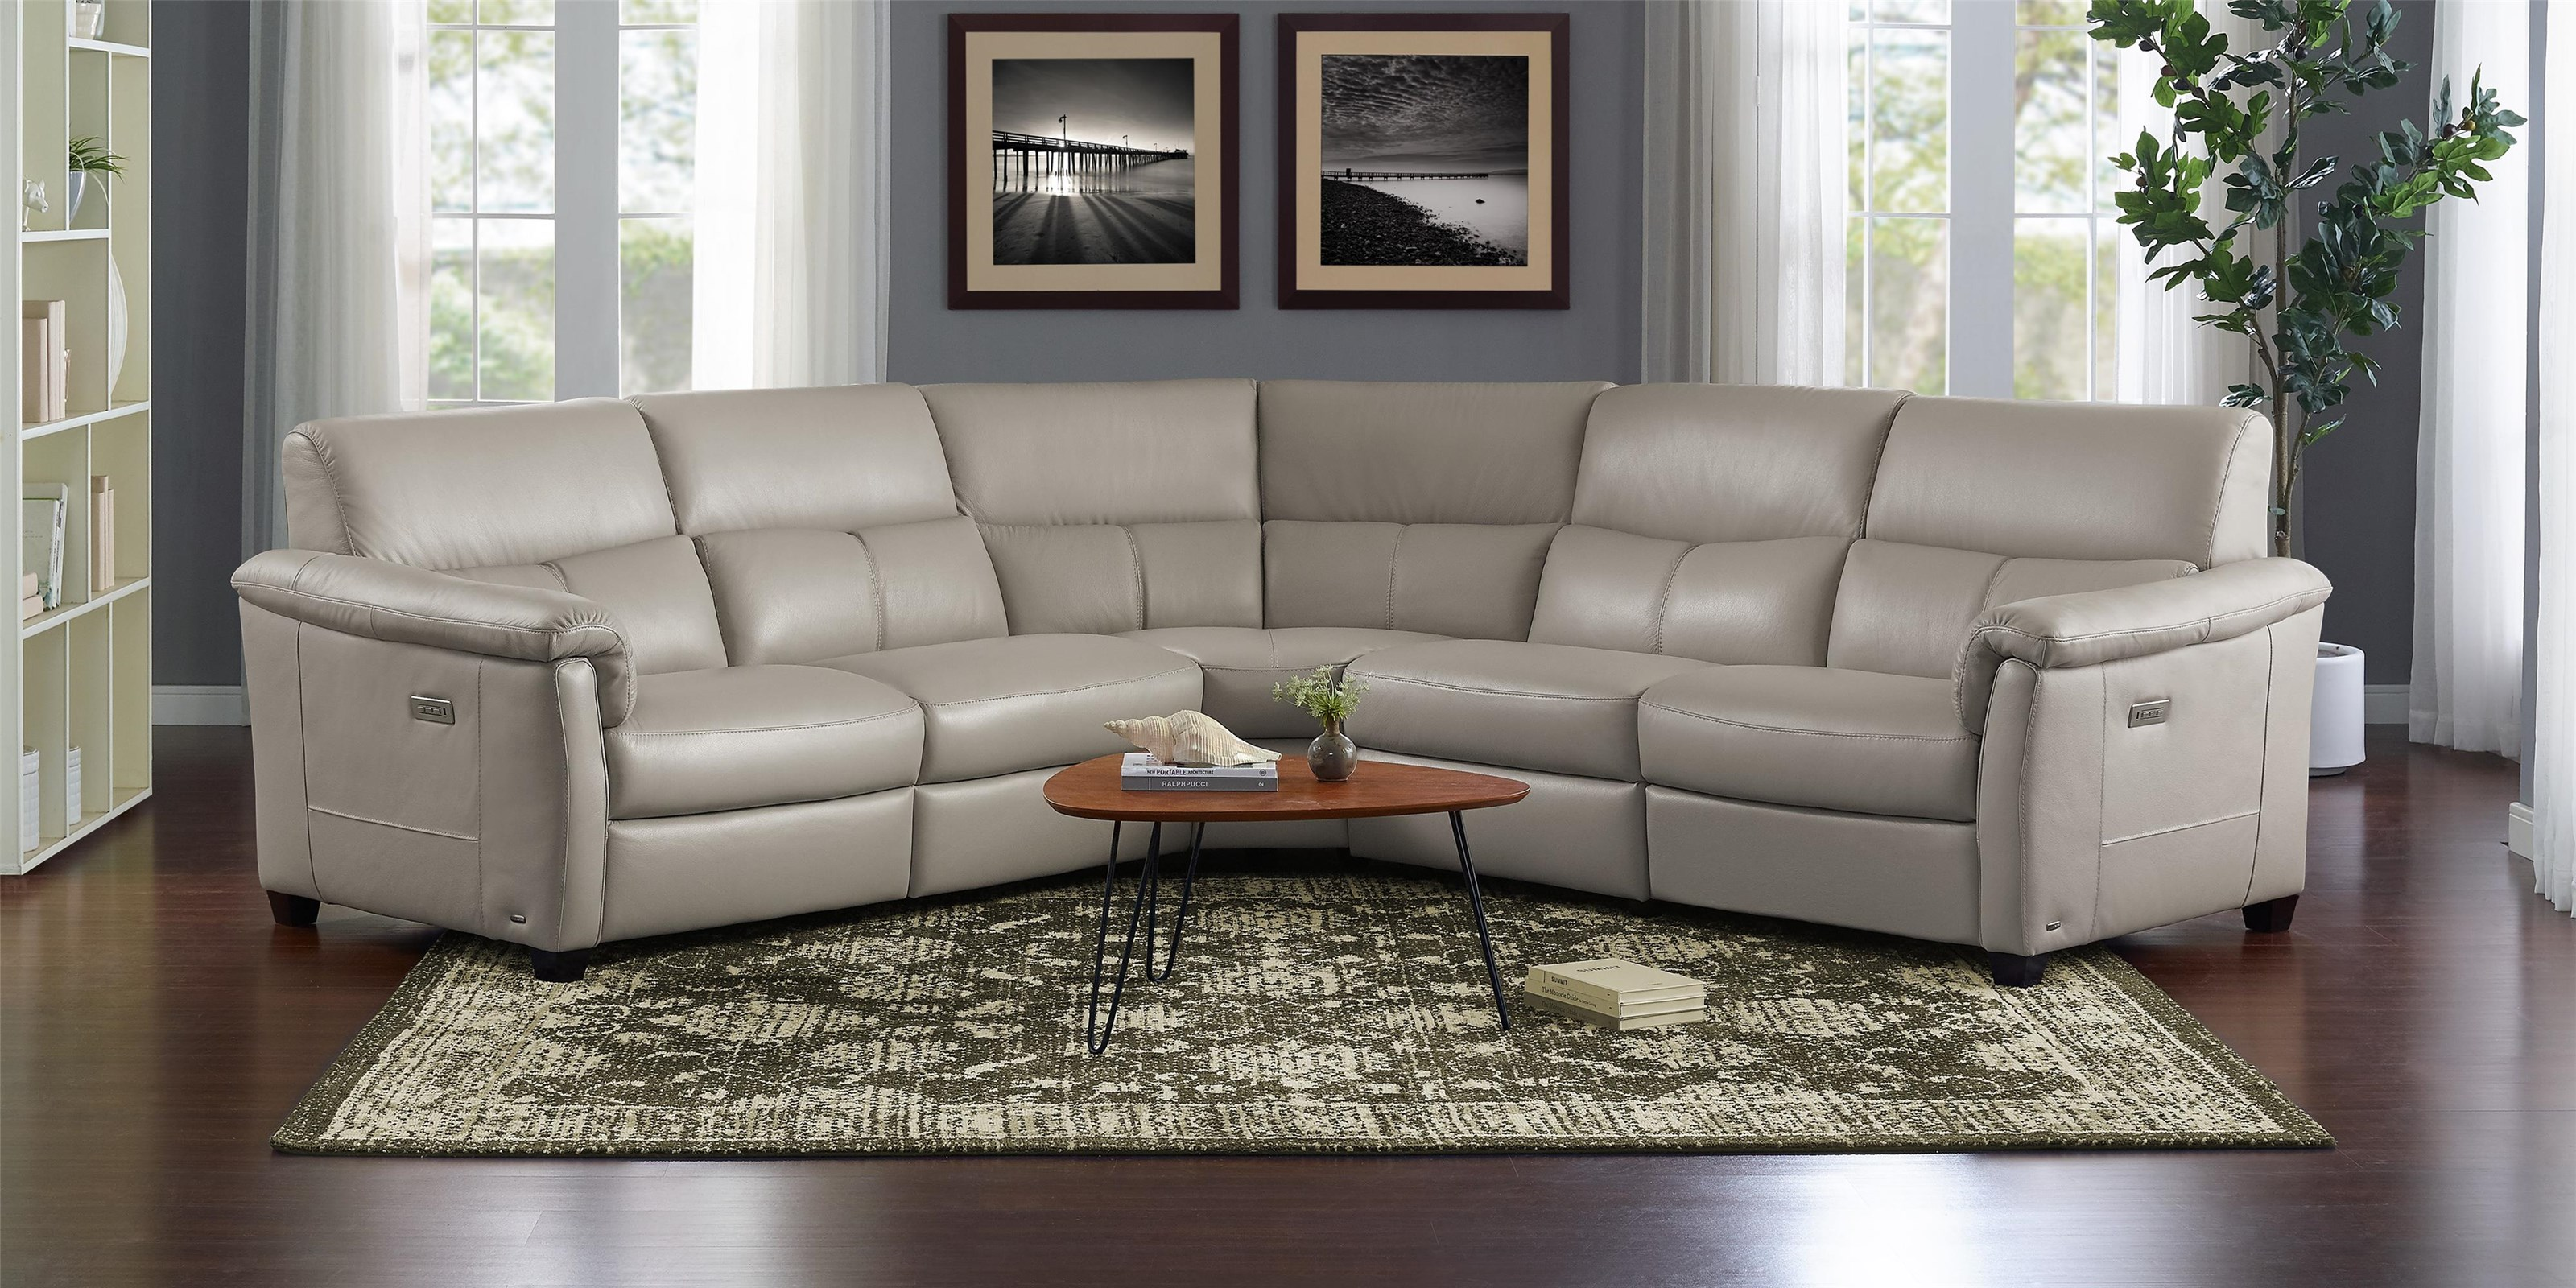 Astuzia 5 Pc Reclining Sectional Sofa by Natuzzi Editions at Baer's Furniture